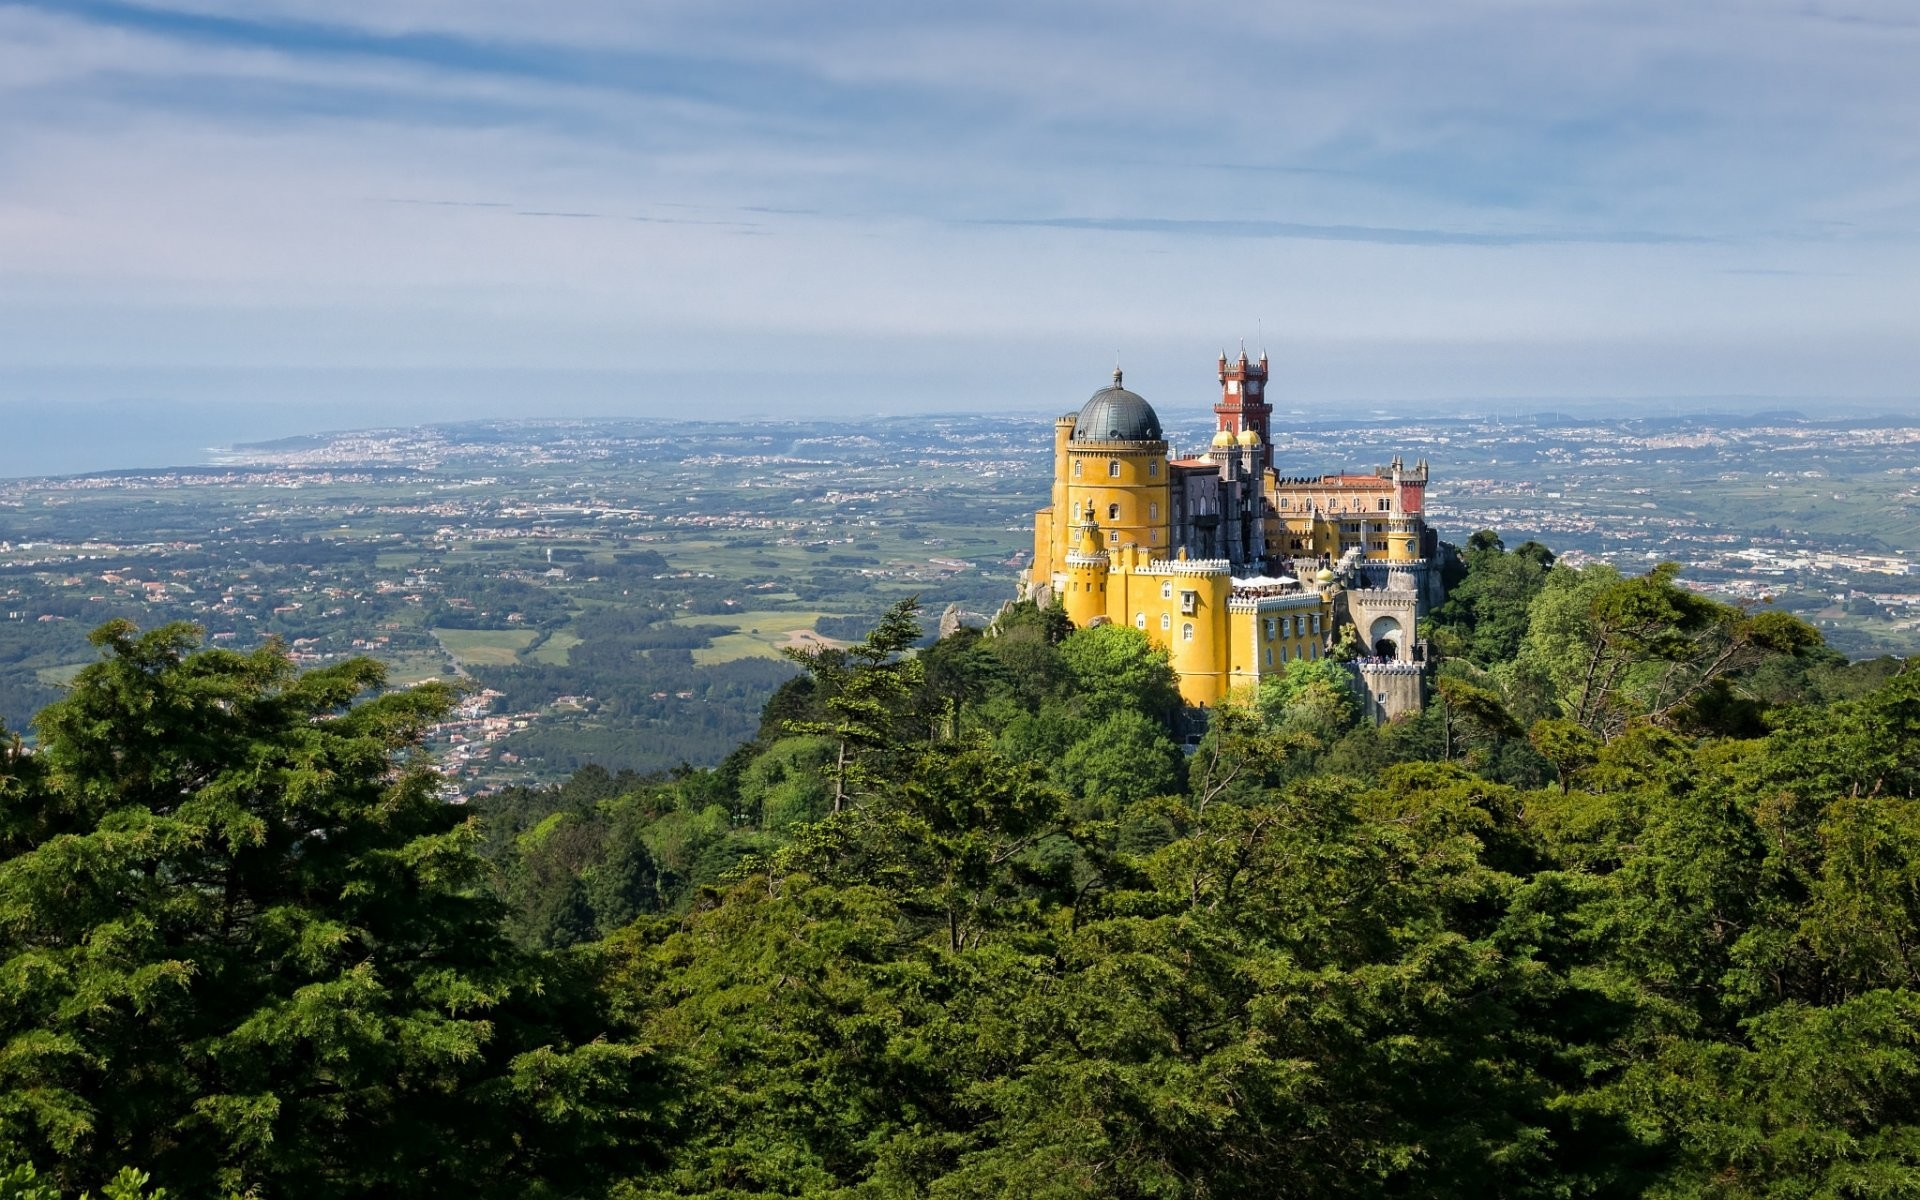 portugal pena palace sky valley mountain castle tower dome